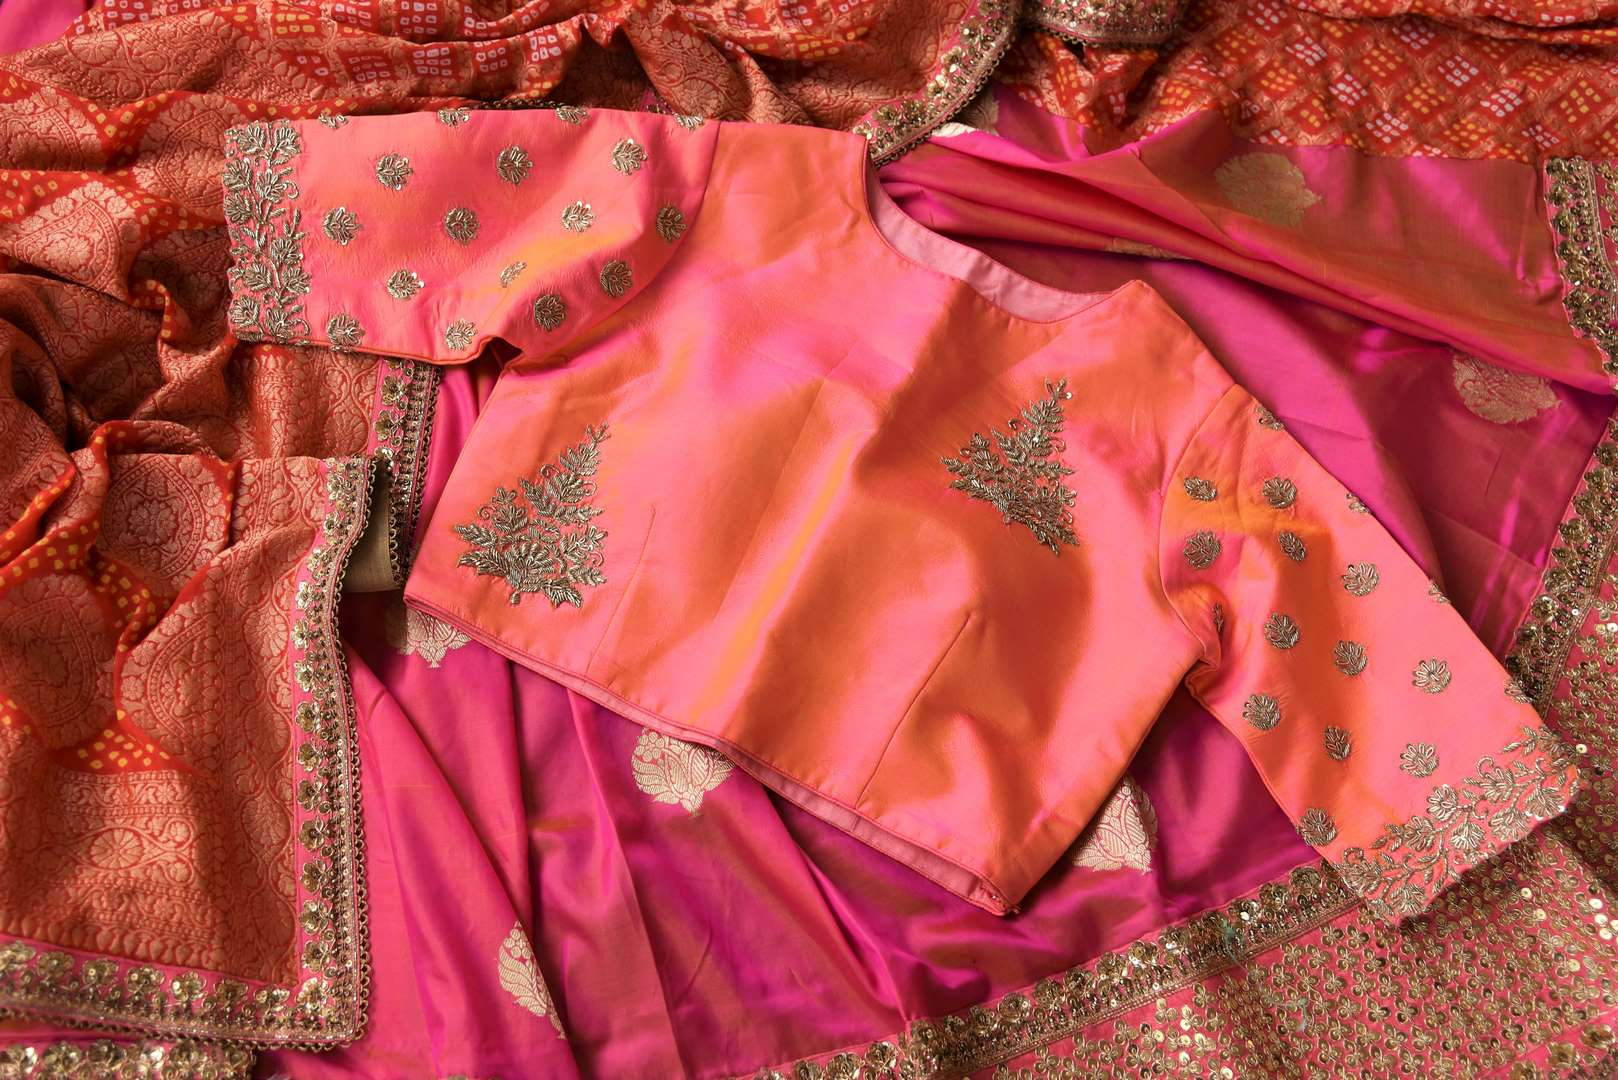 Buy pink and red Banarasi khaddi saree with embroidered blouse online in USA . Beautifully designed saree is a captivating choice for weddings and parties. Shop Indian wedding sarees in USA from an alluring collection available at Pure Elegance fashion store.-details